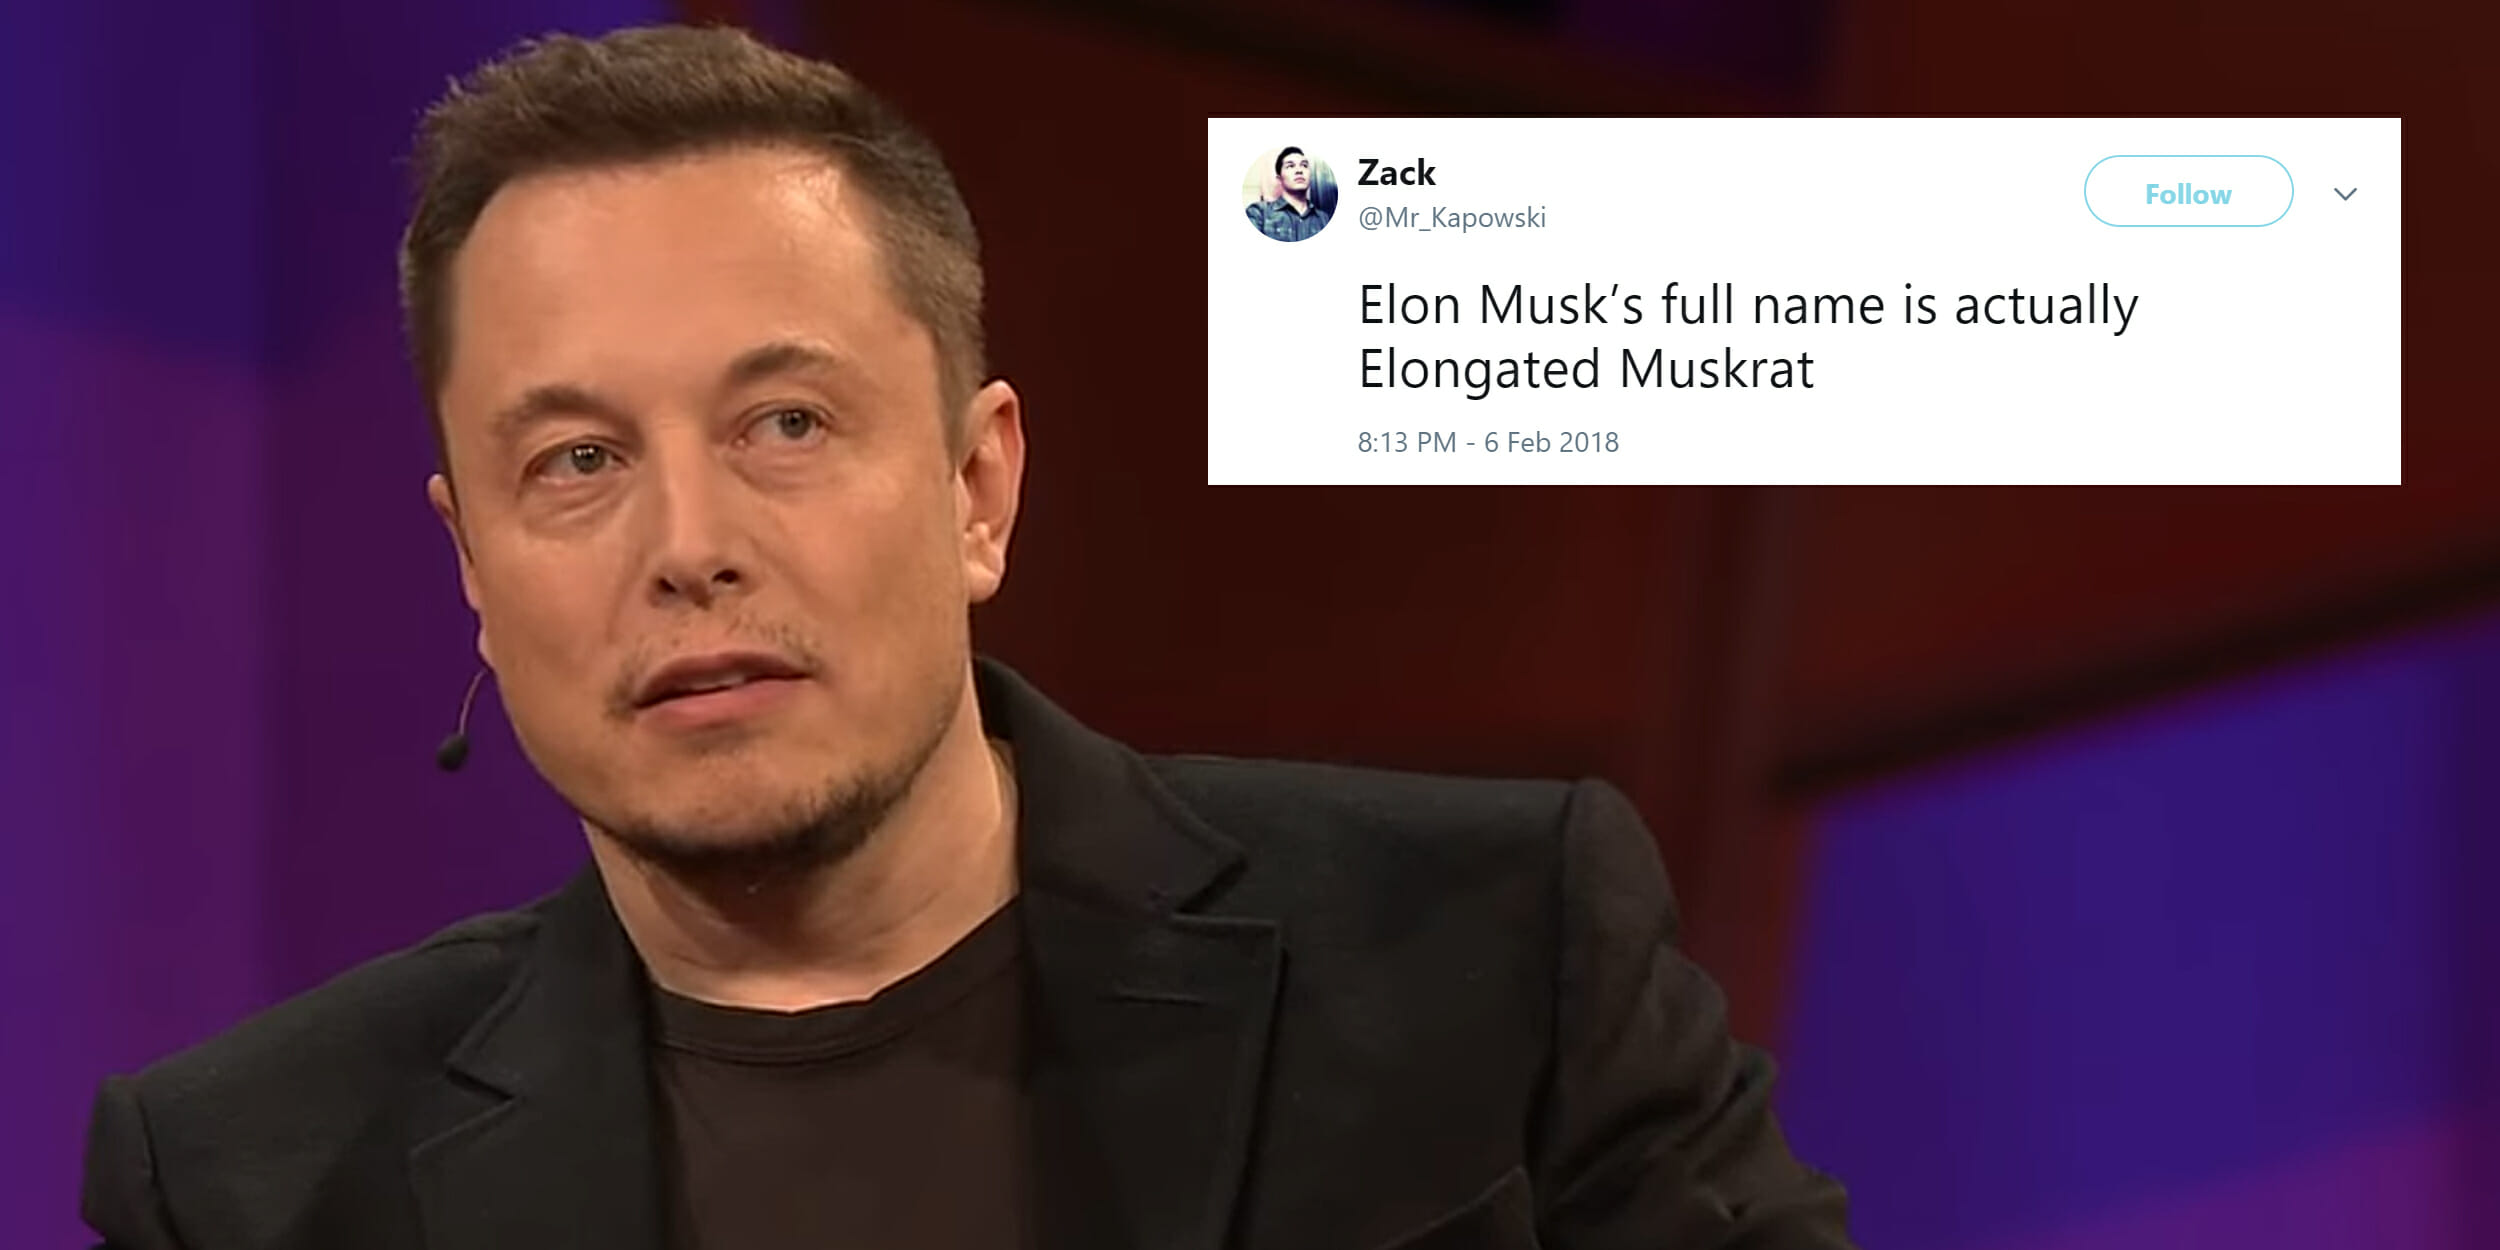 Elon Musk is actually named Elongated Muskrat meme